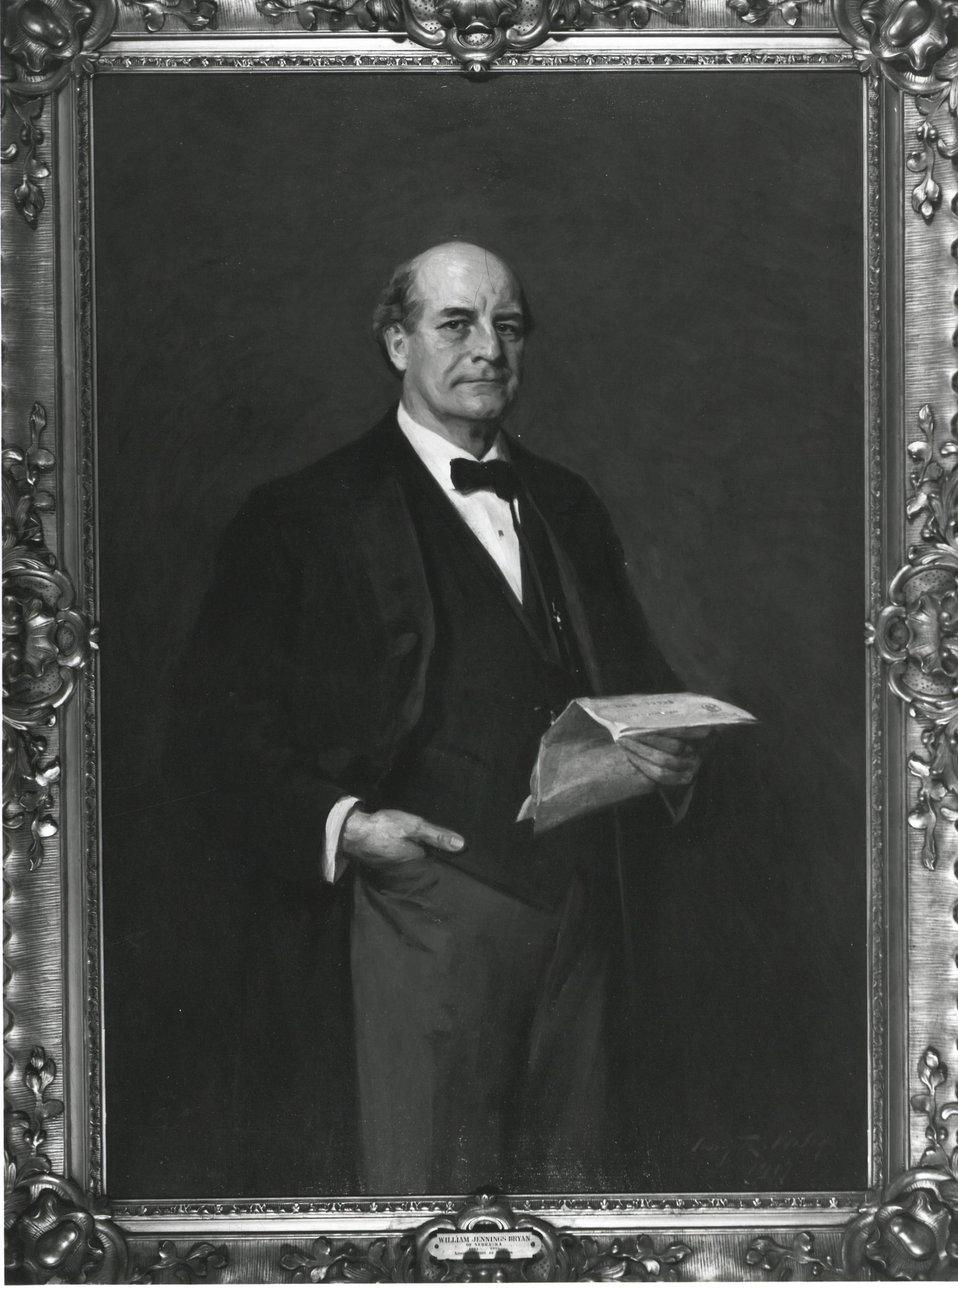 William Jennings Bryan, U.S. Secretary of State